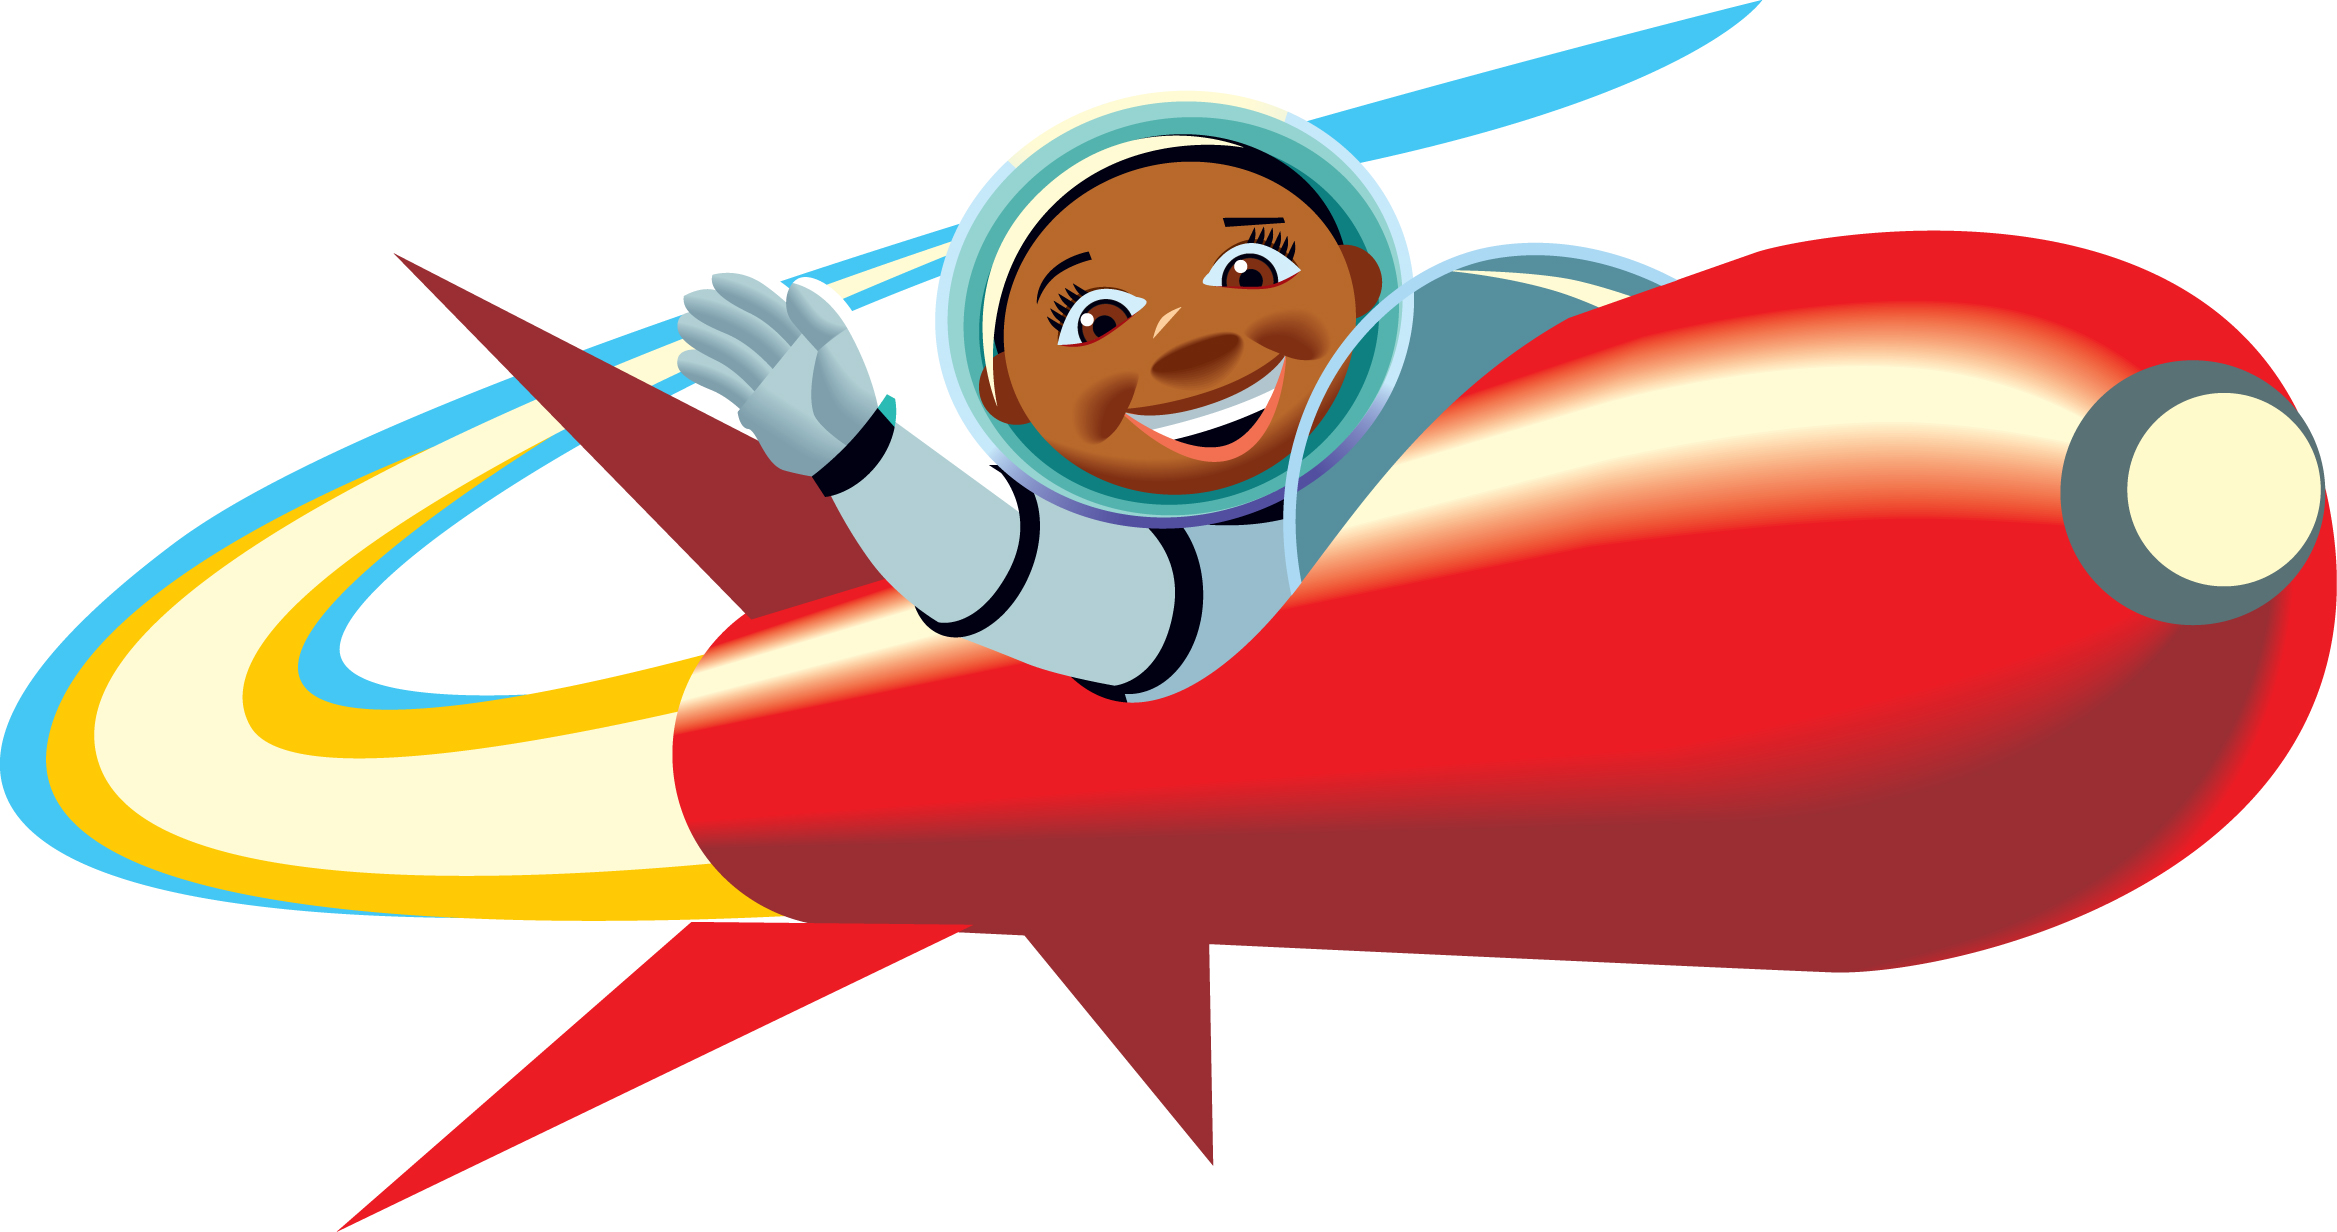 Pictures Of Space Rockets For Kids